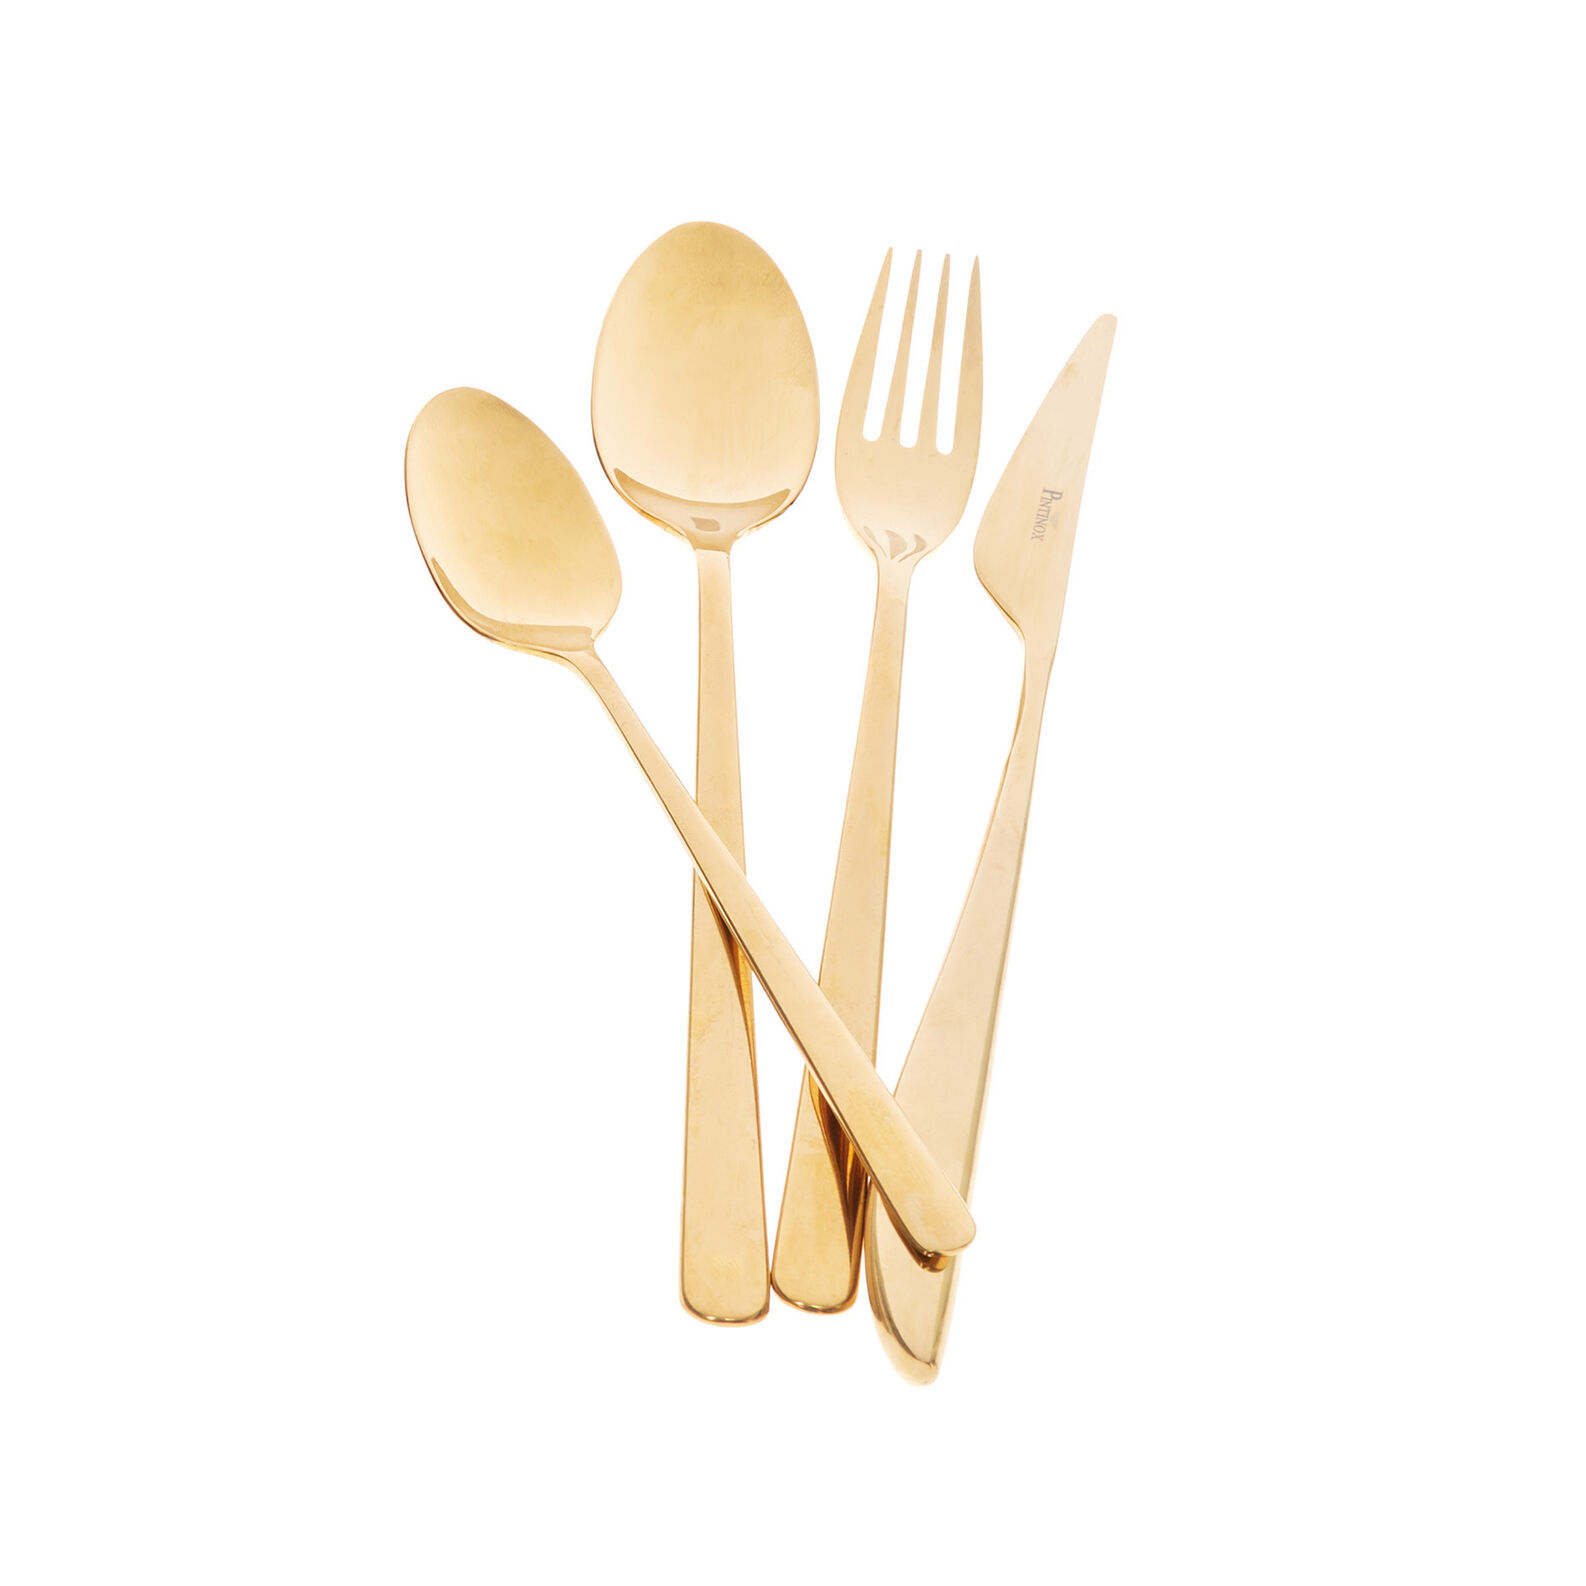 24-piece cutlery set in steel with gold finish